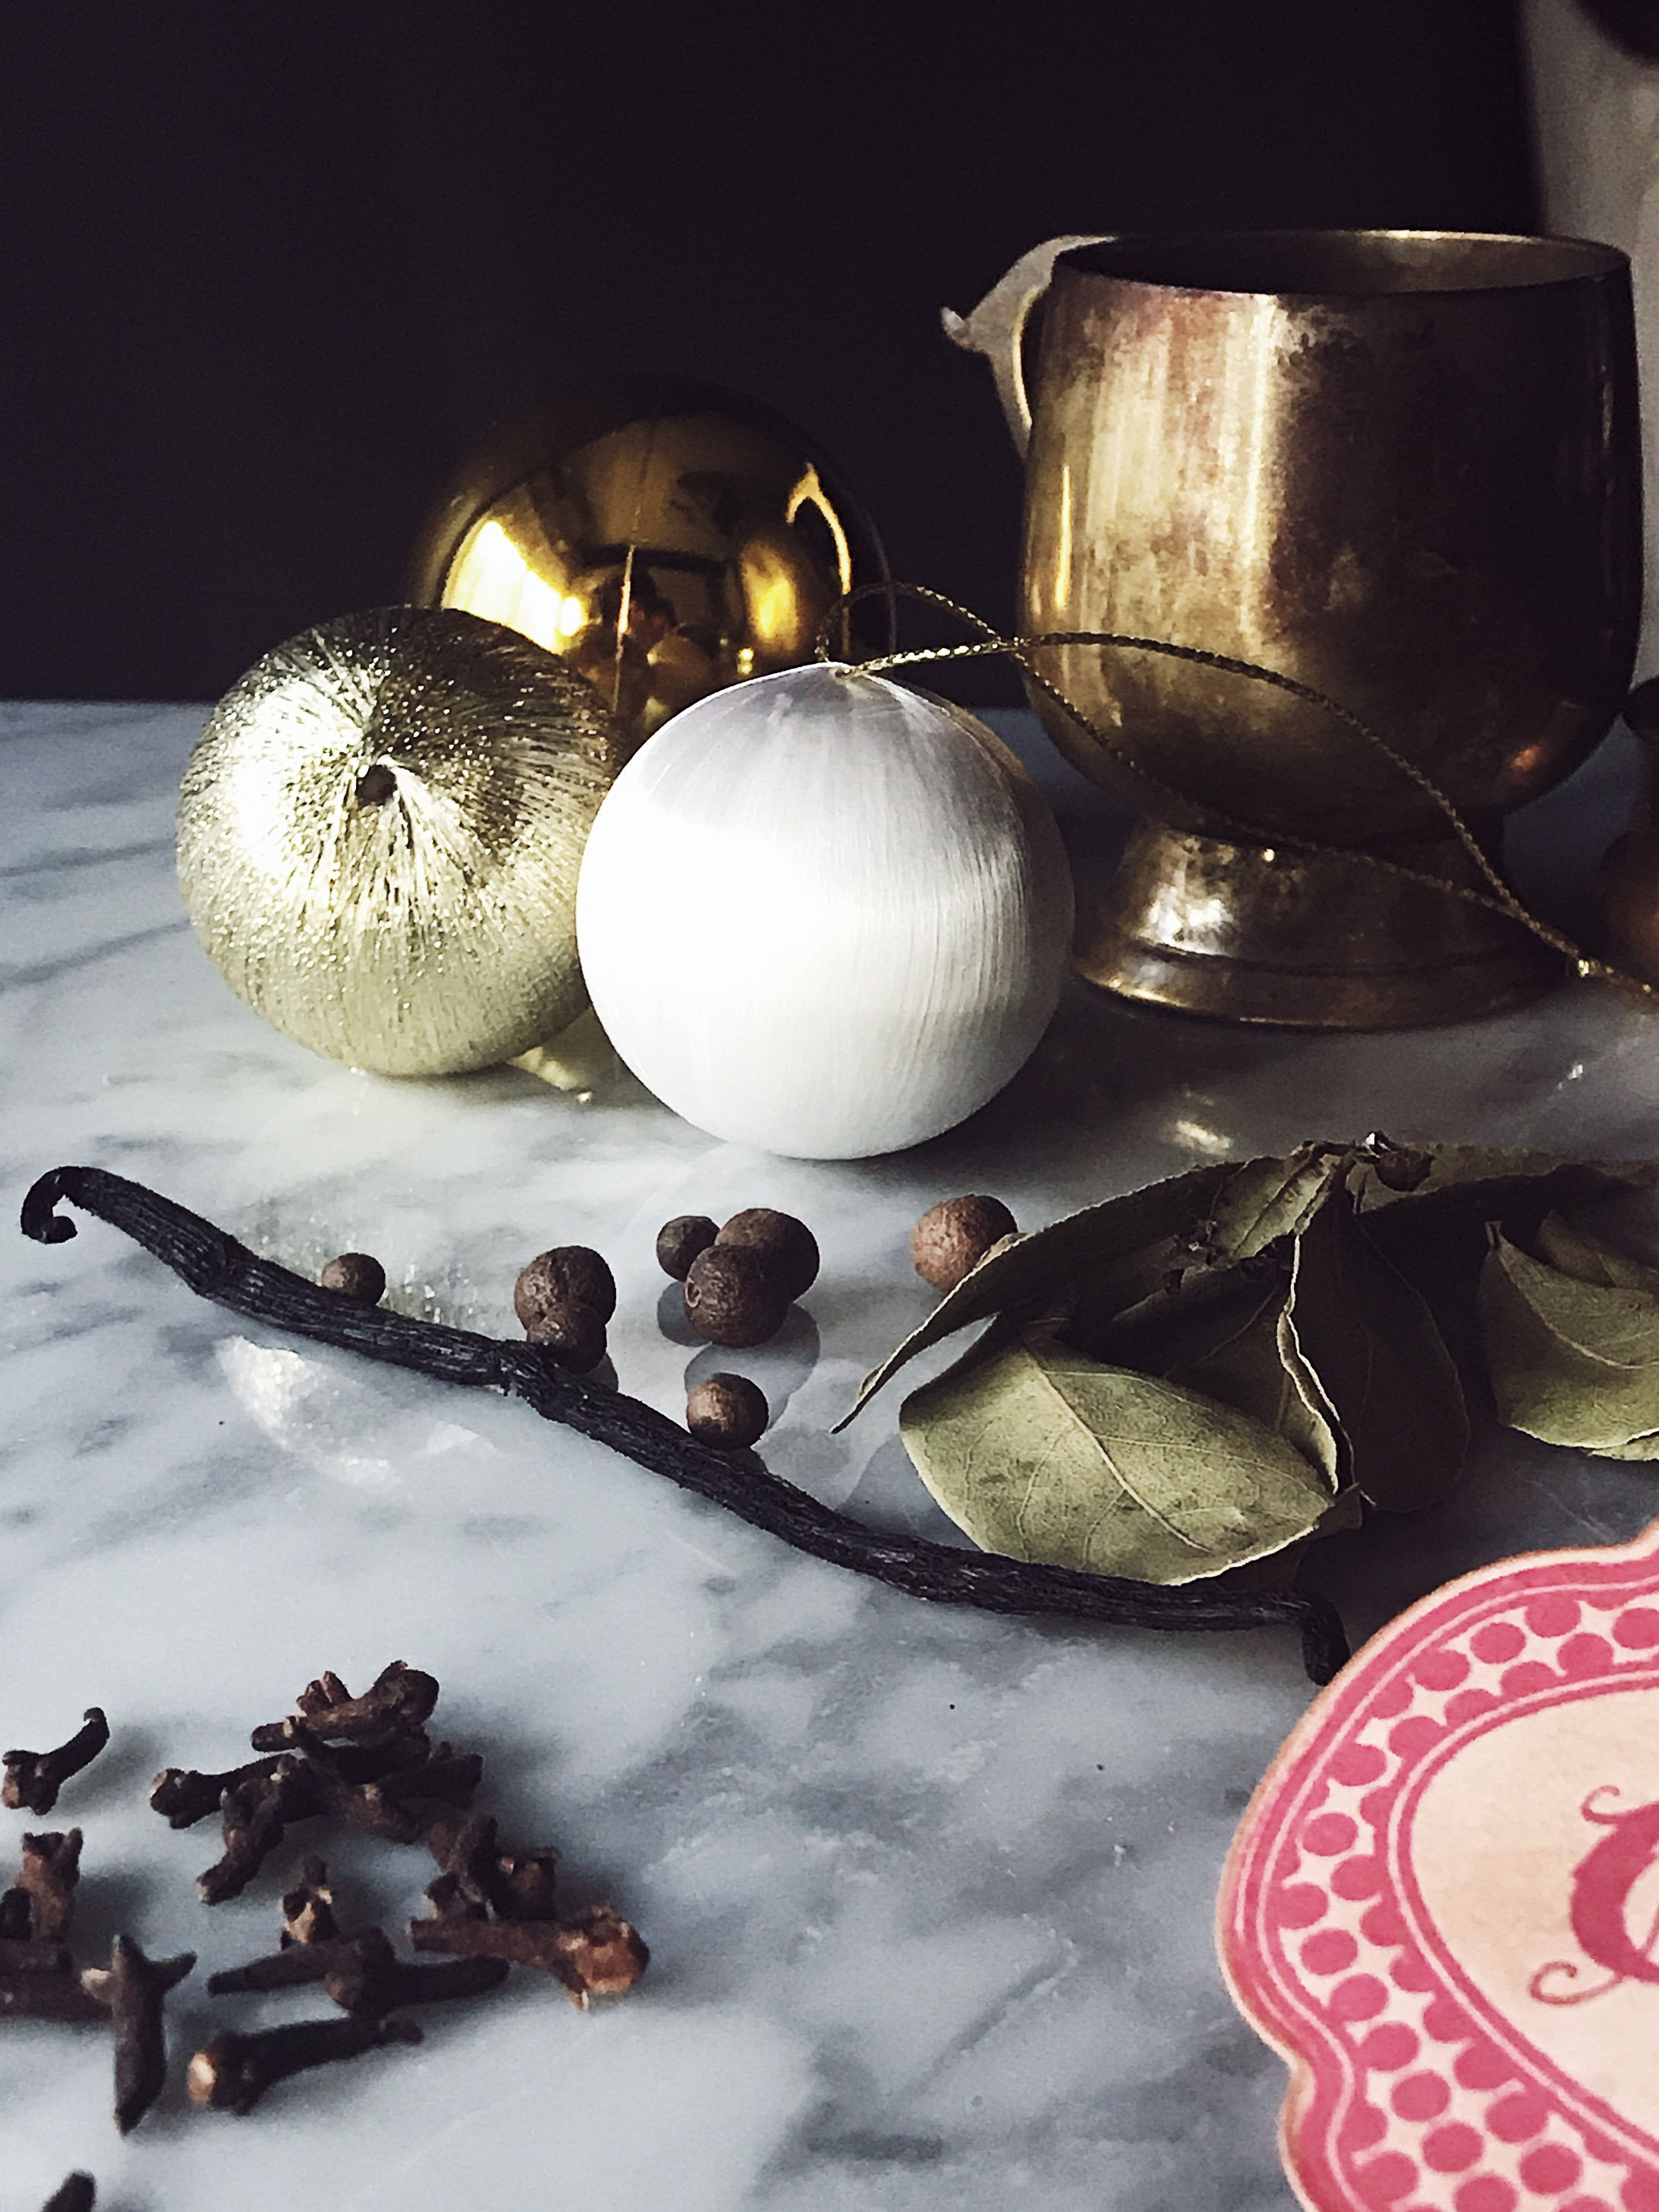 Stove top potpourri with Christmas spices